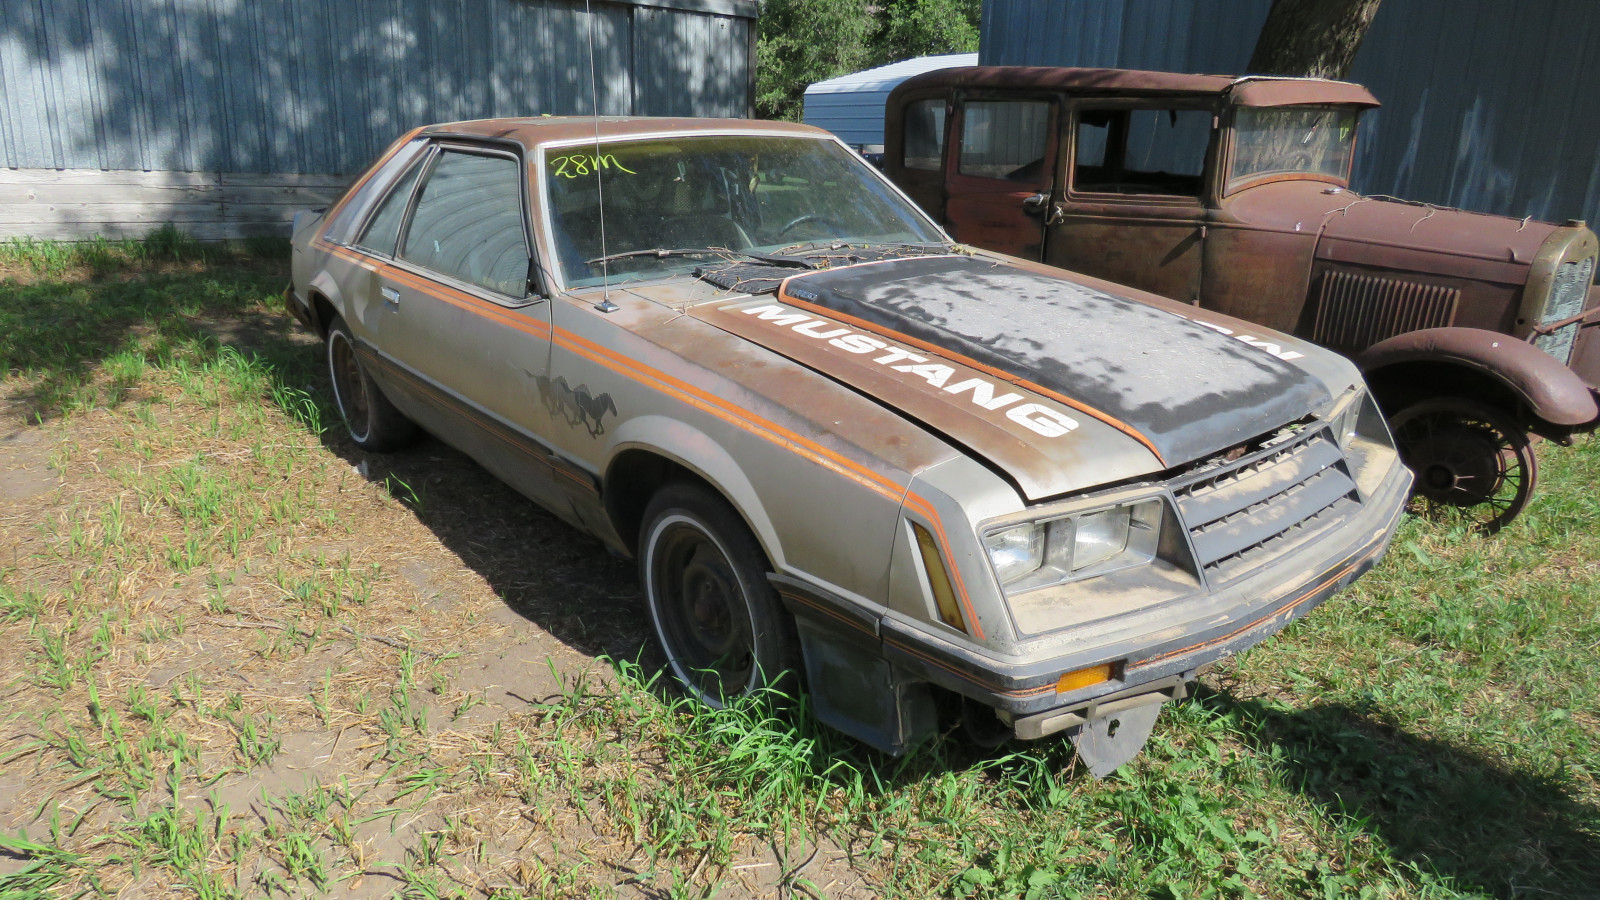 1979 Ford Mustang Coupe for Project or Parts - Image 1